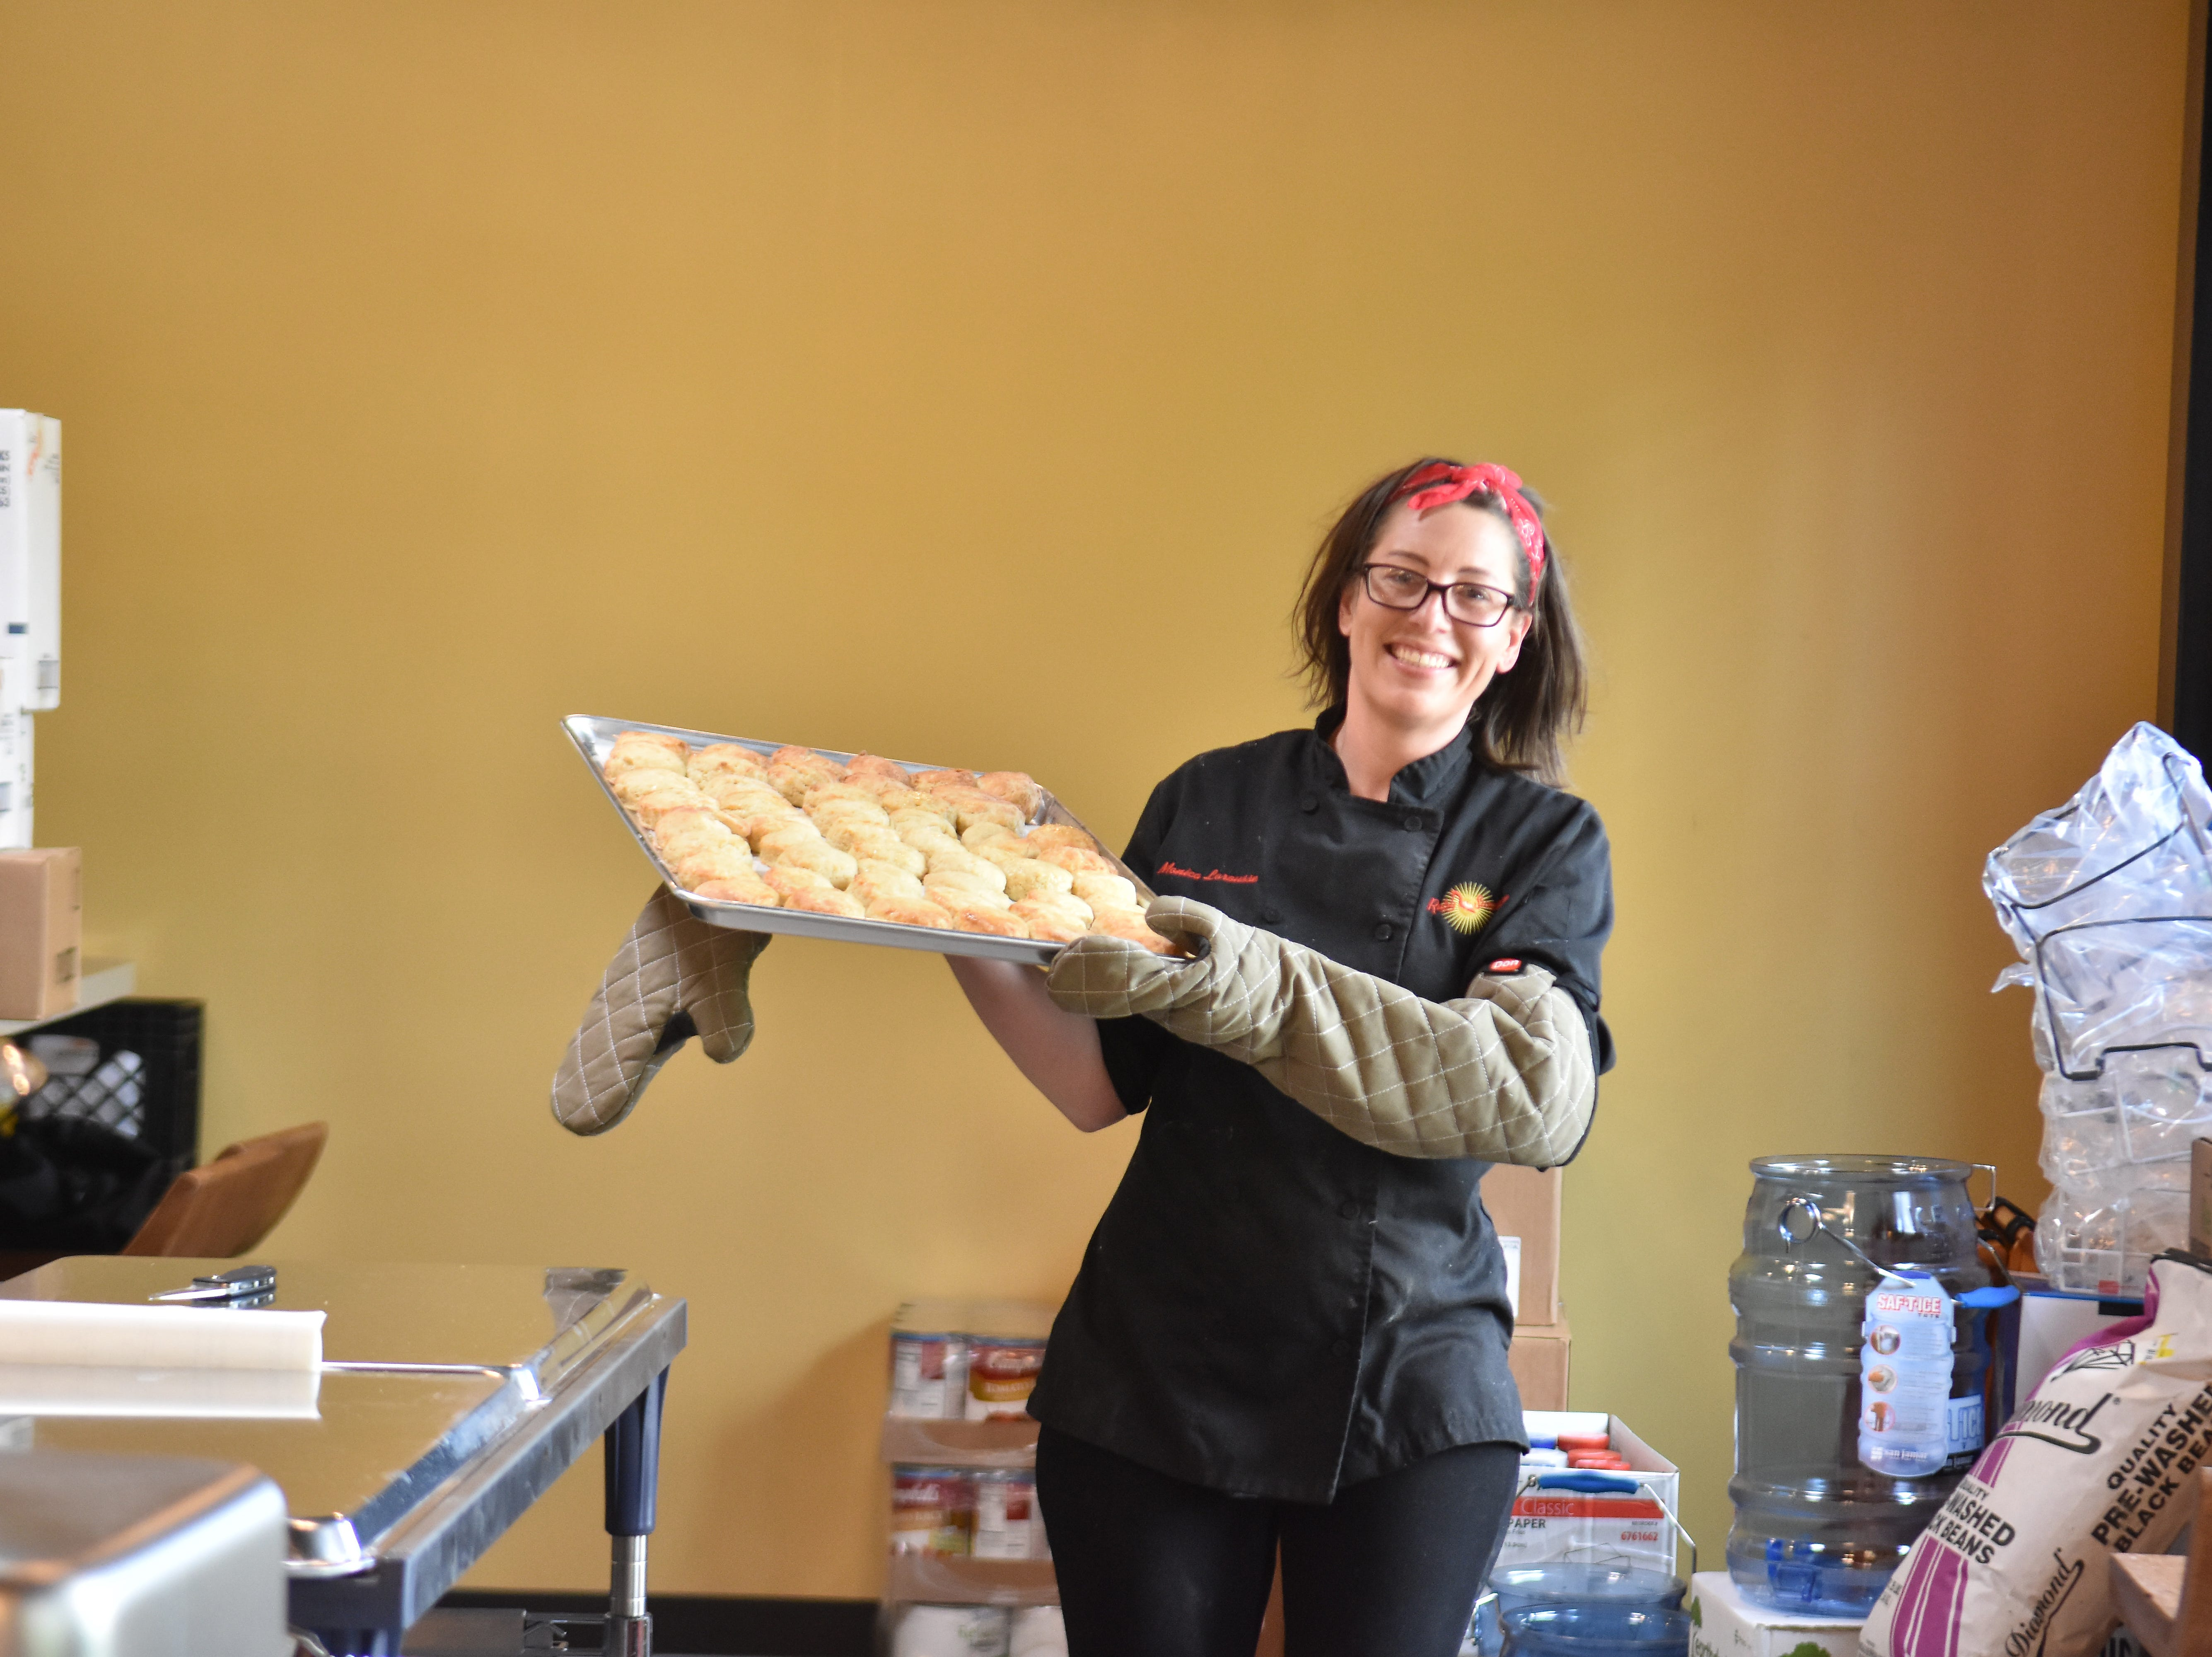 Chef Monica Larousse with Ruby Sunshine brings out a tray of piping hot biscuits fresh from the oven.